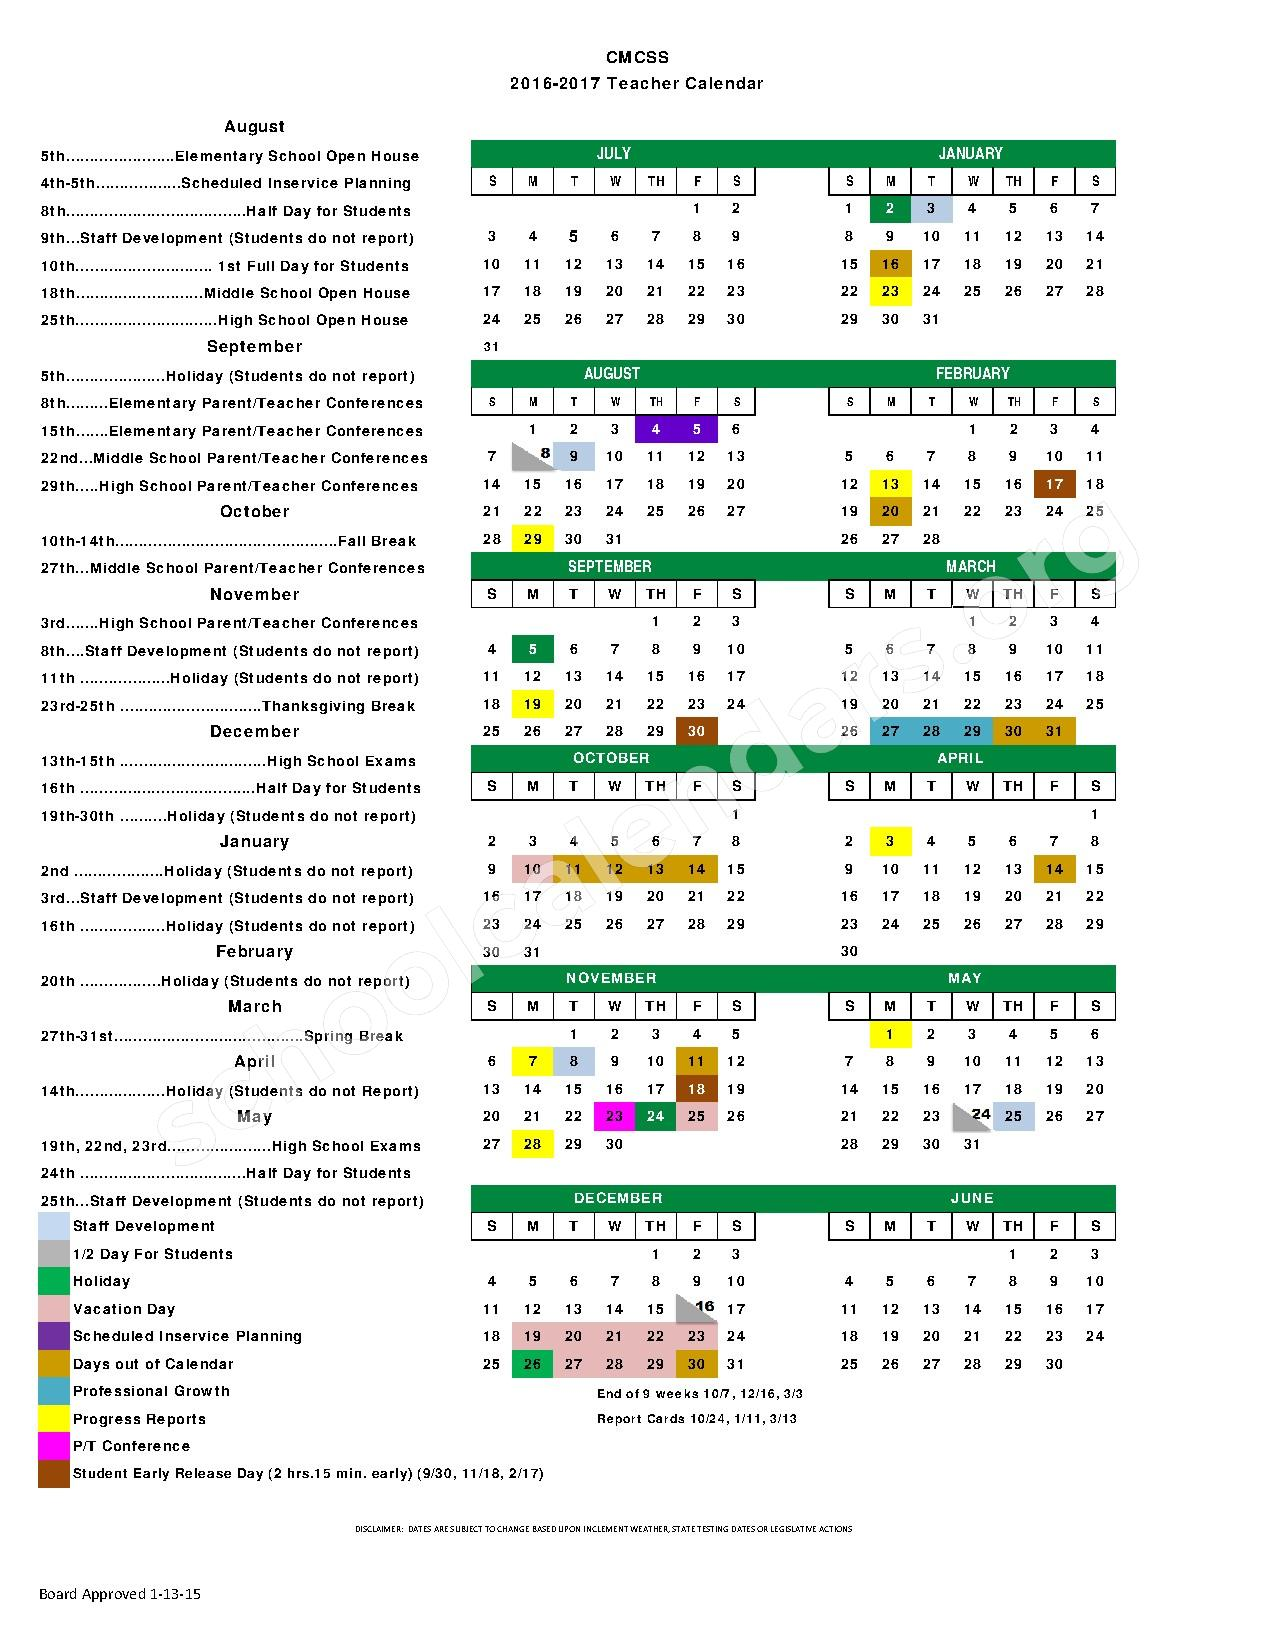 2016 - 2017 Teacher Calendar – Barkers Mill Elementary School – page 1